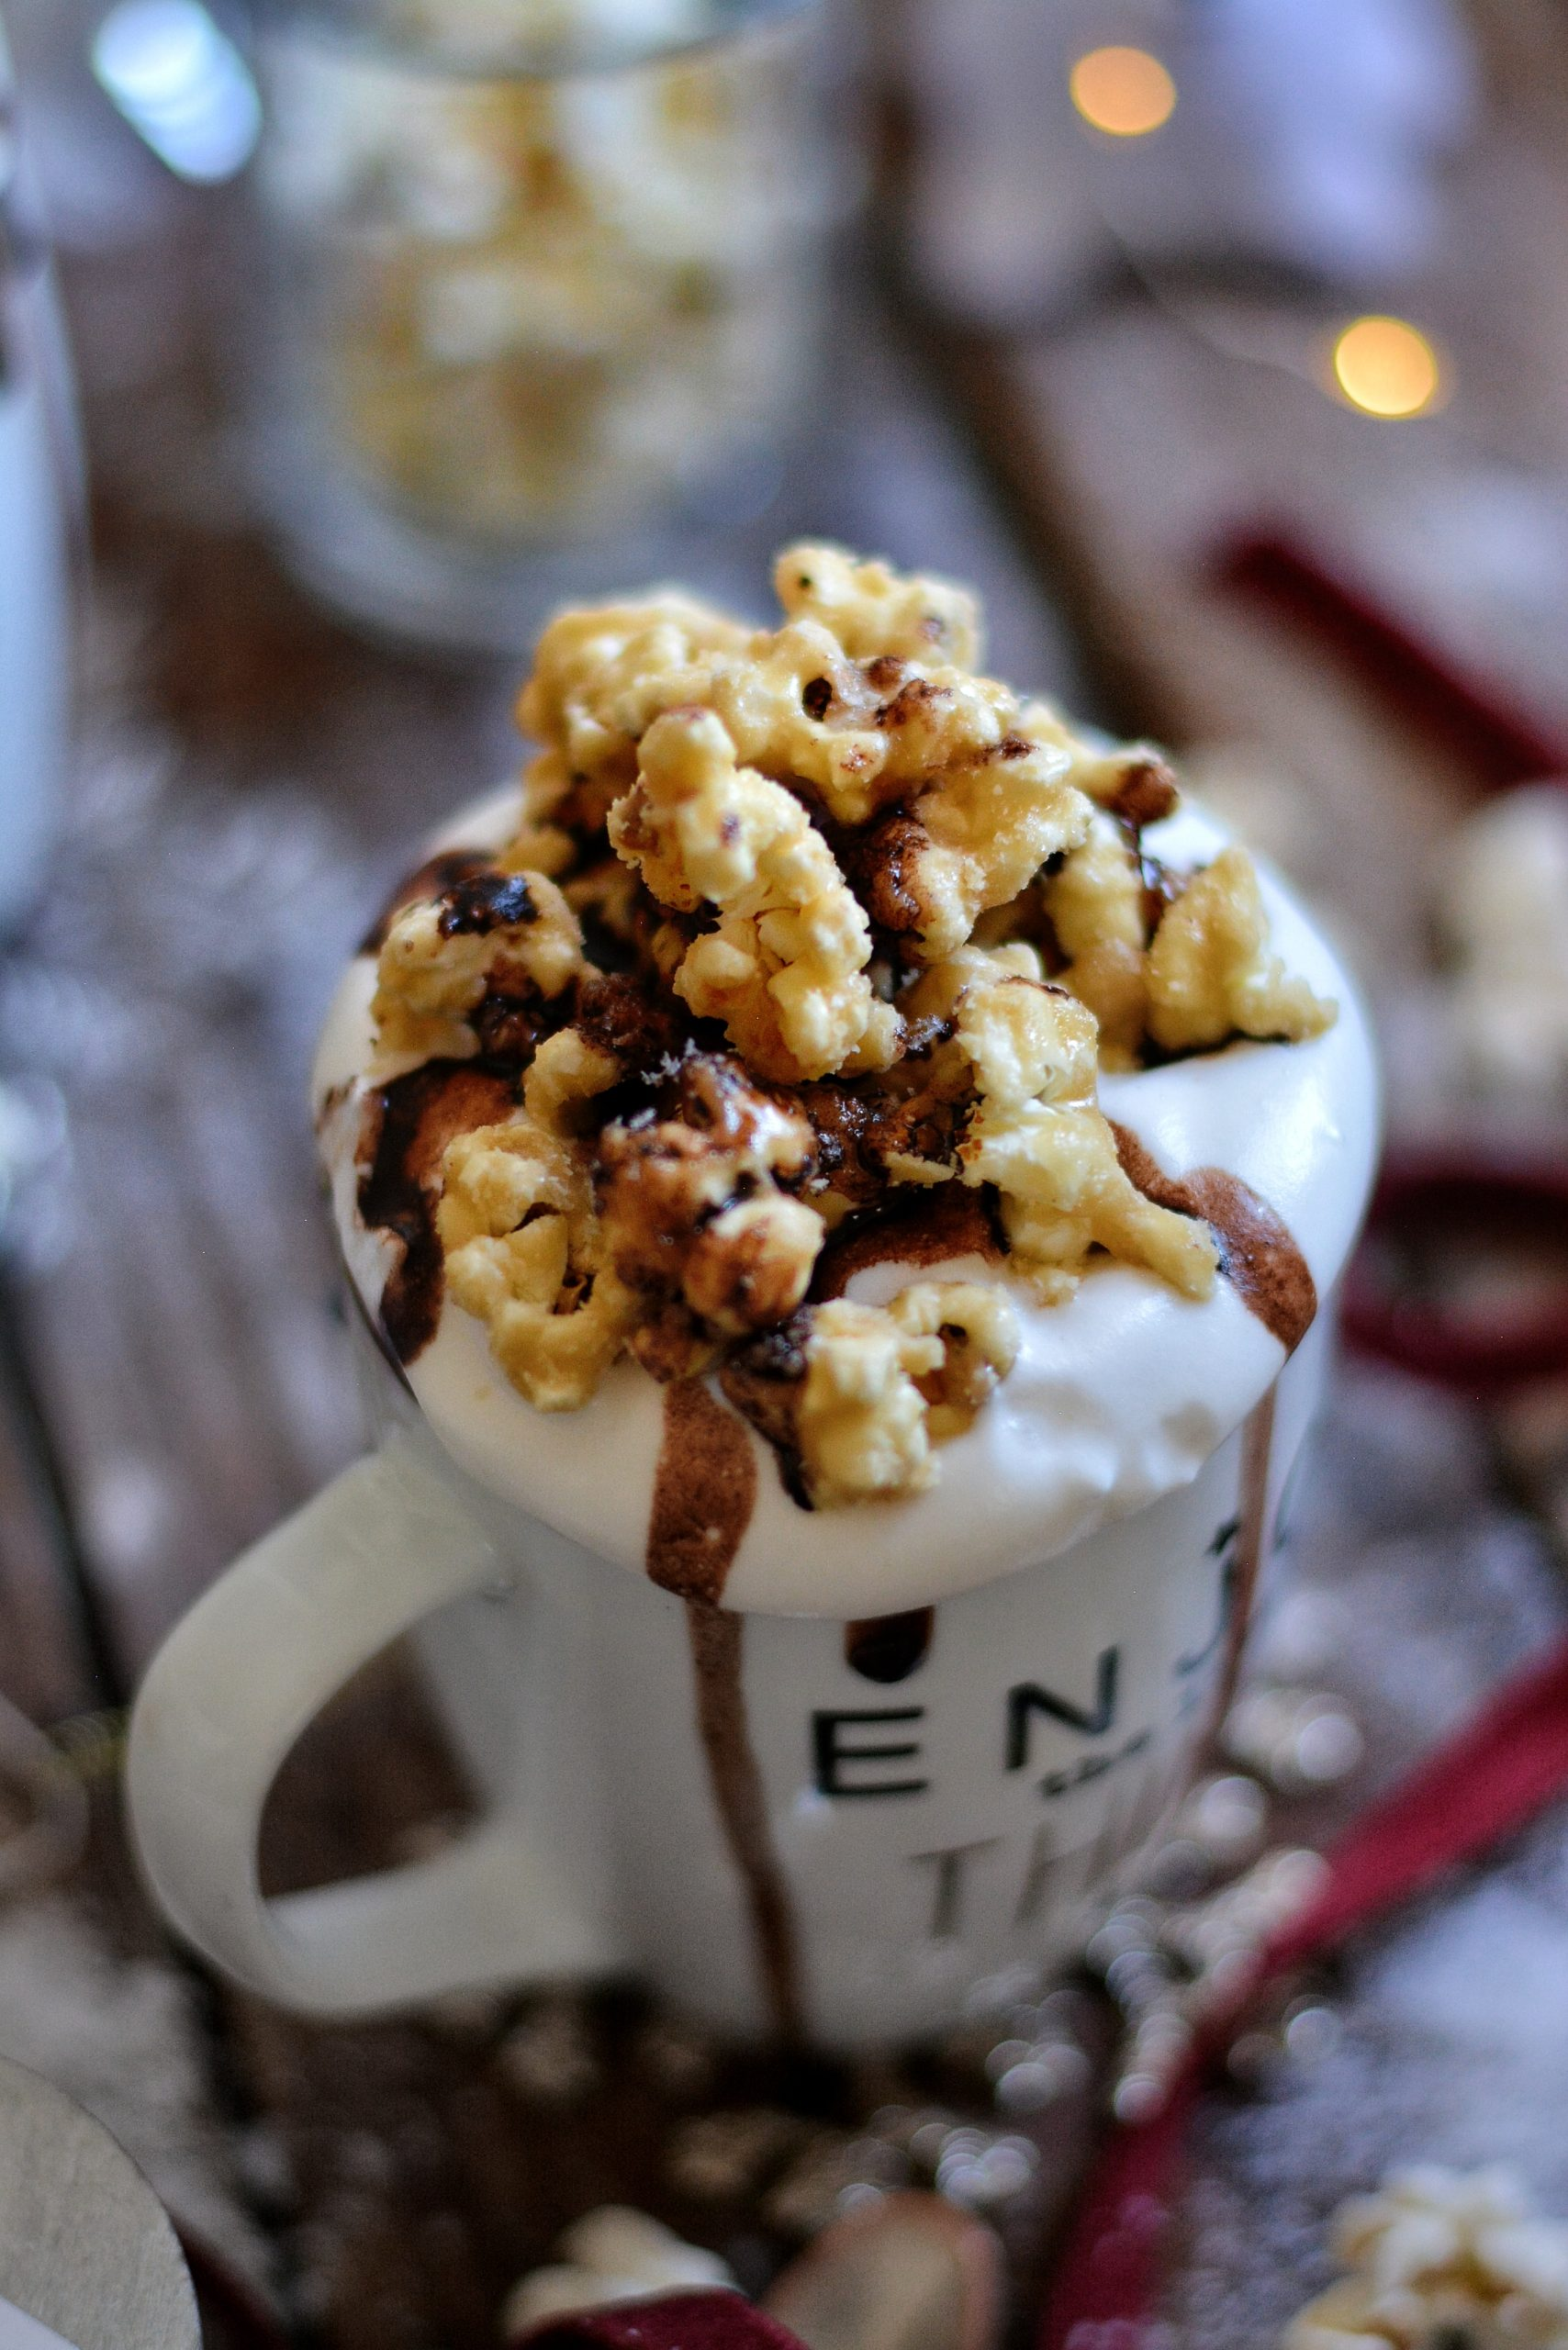 Chocolat Chaud Vegan Riche au Pop Corn / Vegan Rich Pop Corn Hot Chocolate